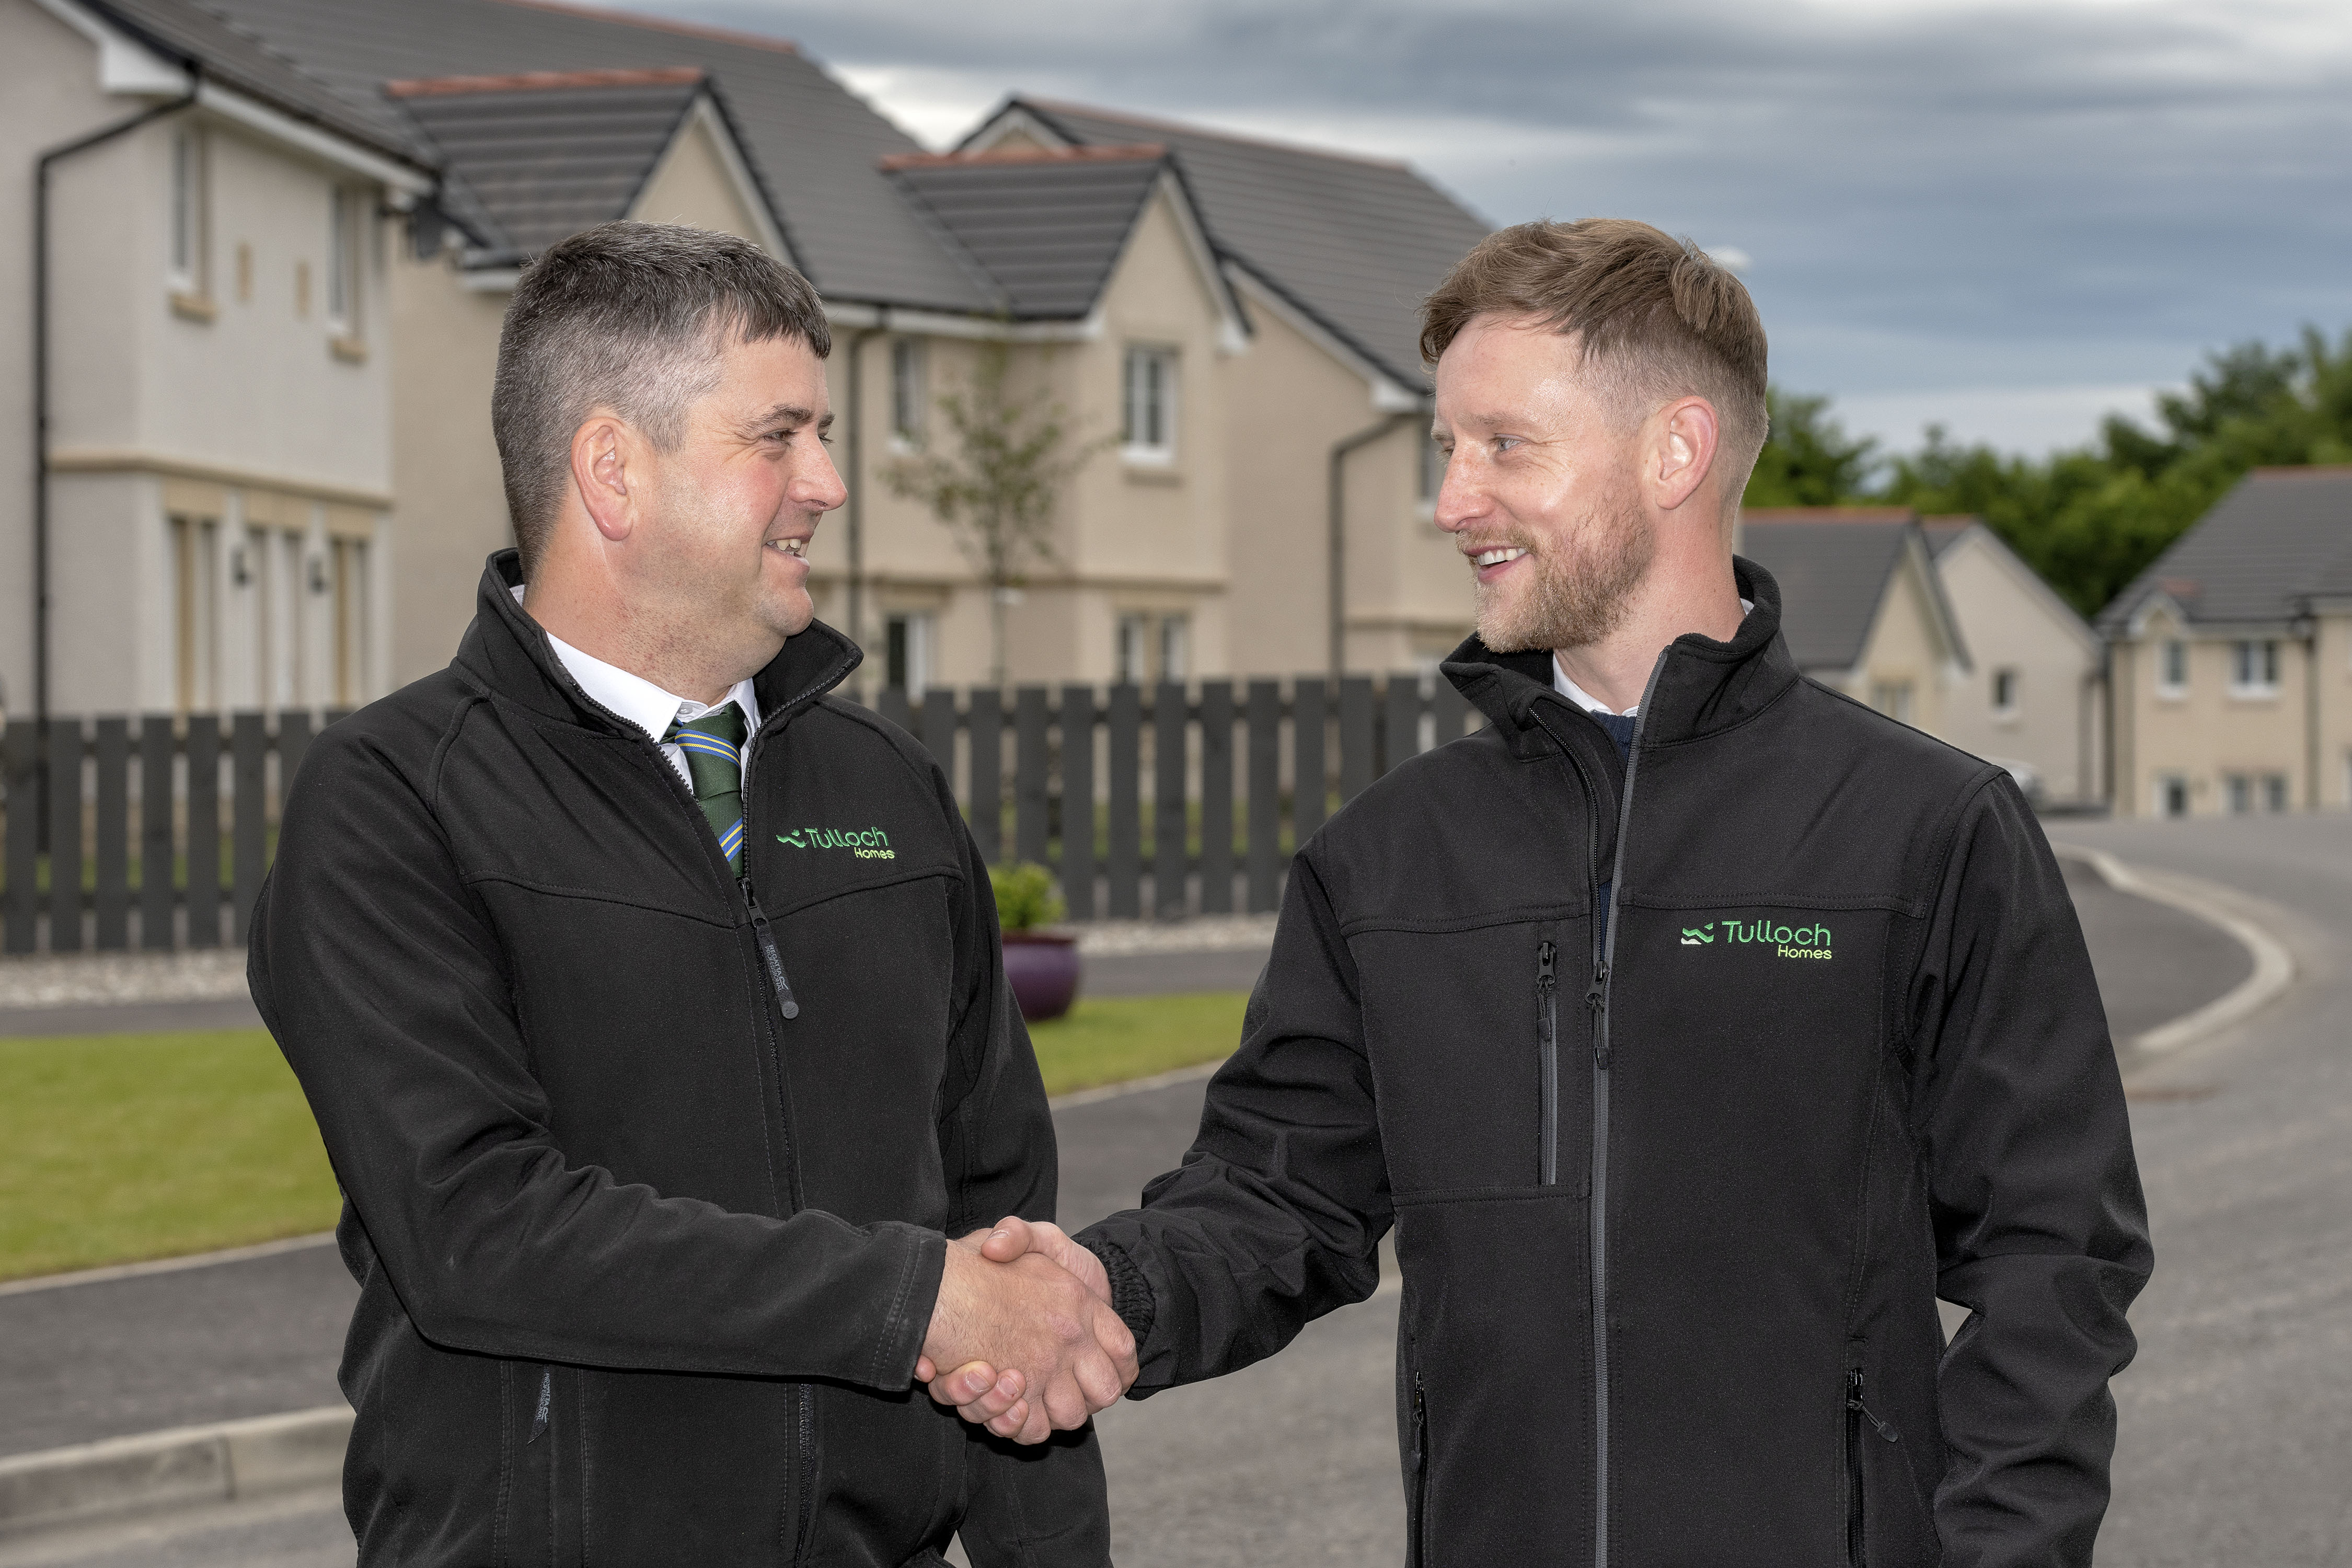 Zander Sutherland, right, is congratulated on his new award by assistant site manager George Johnstone.